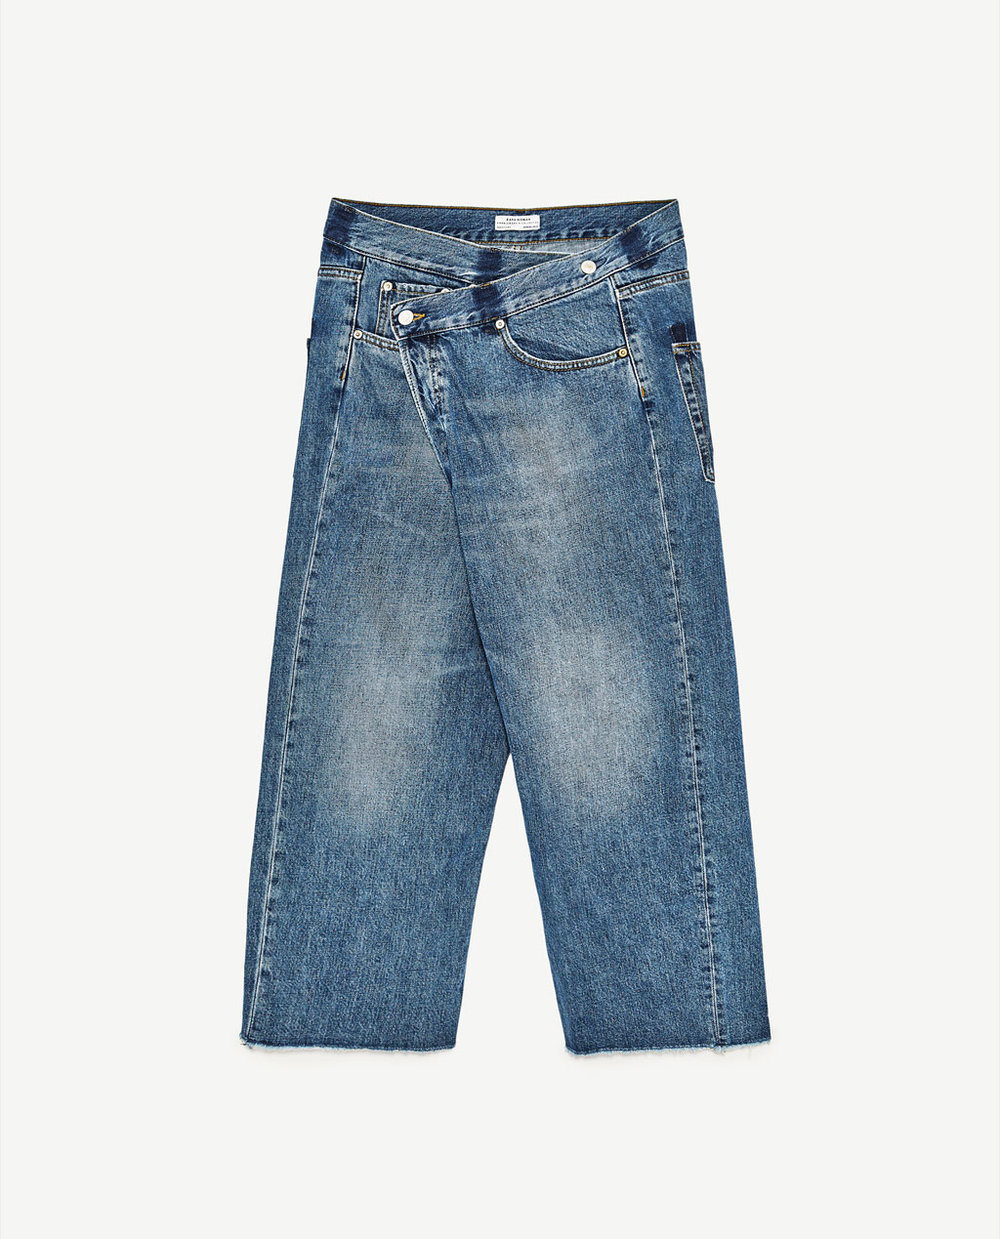 reconstructed premium denim $70